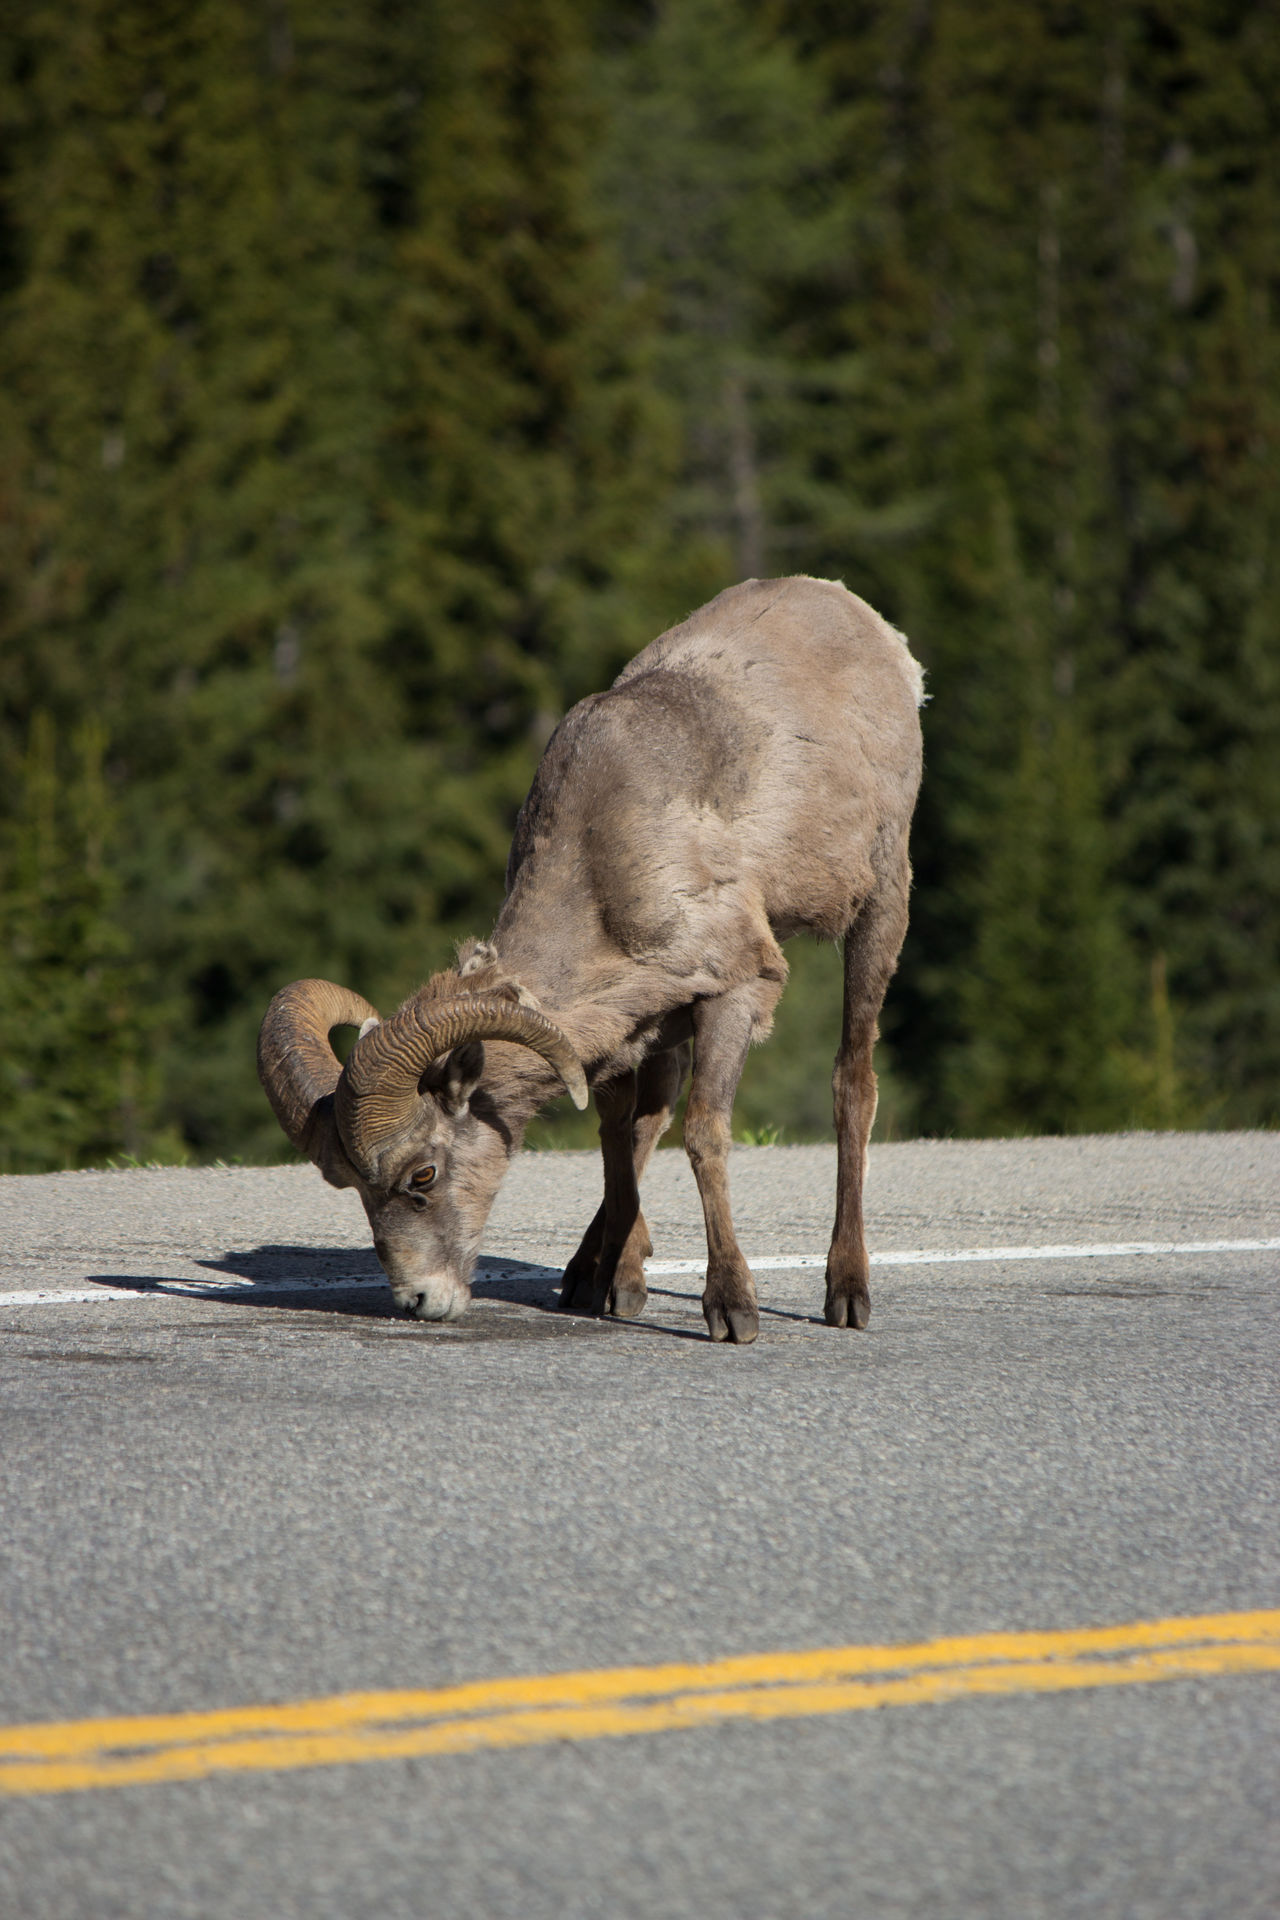 Rocky Mountain sheep in Banff, Canada Animal Animal Themes Animals In The Wild Day Hanging Out Mammal Mountain Sheep Nature No People One Animal Outdoors Road